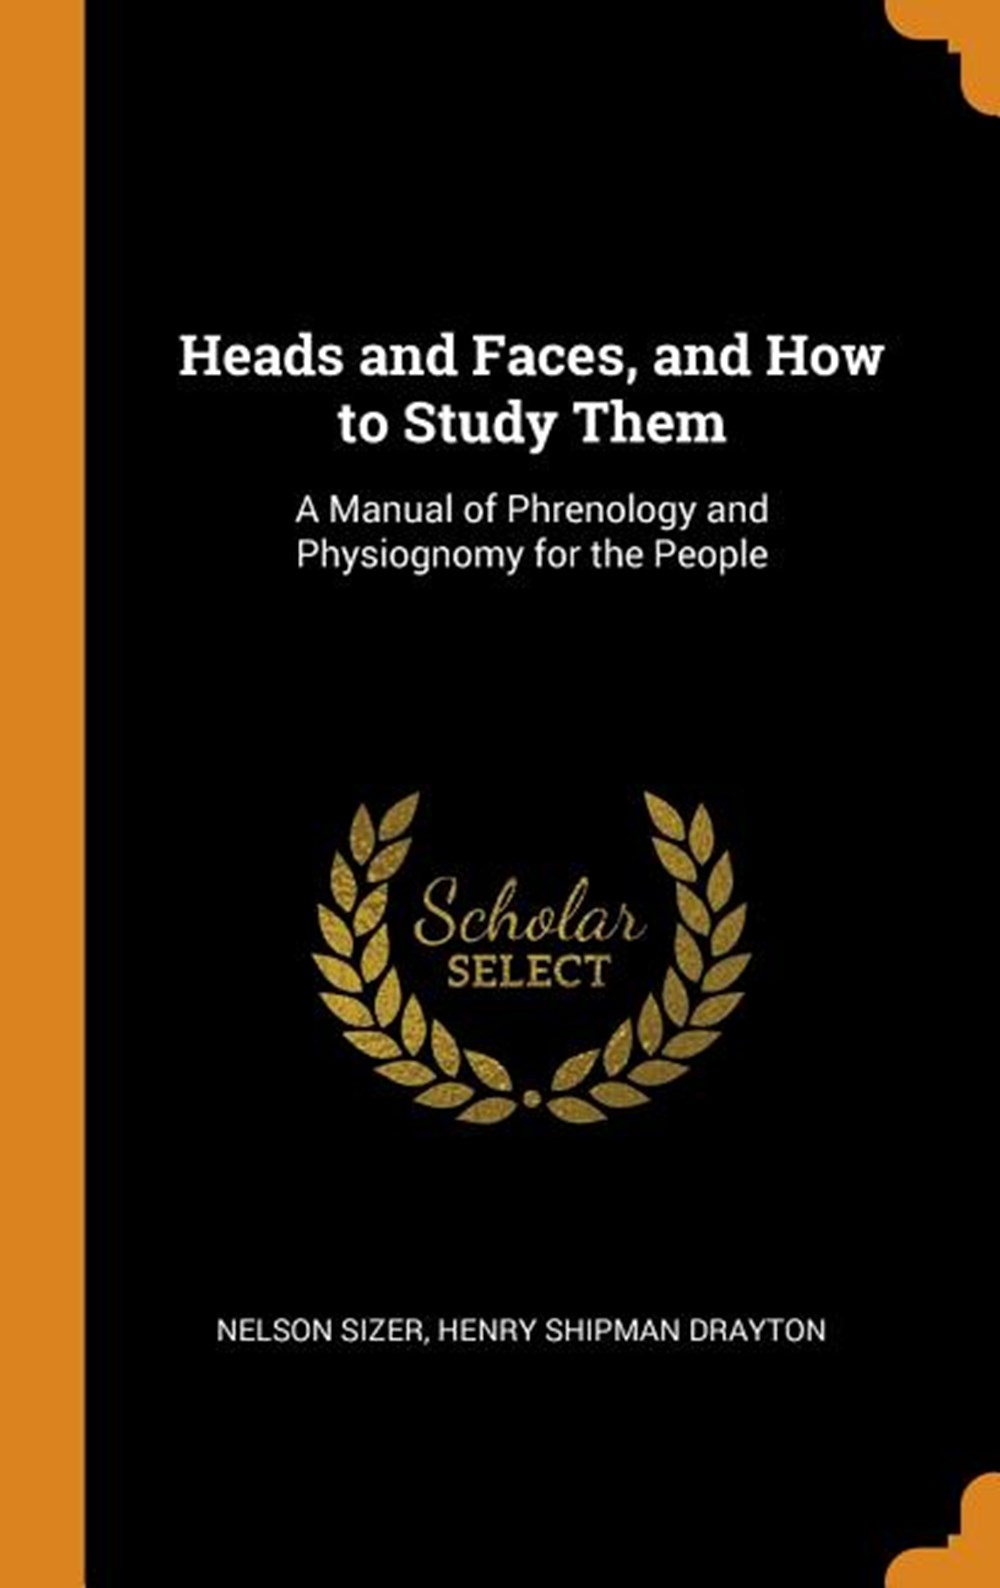 Heads and Faces, and How to Study Them A Manual of Phrenology and Physiognomy for the People